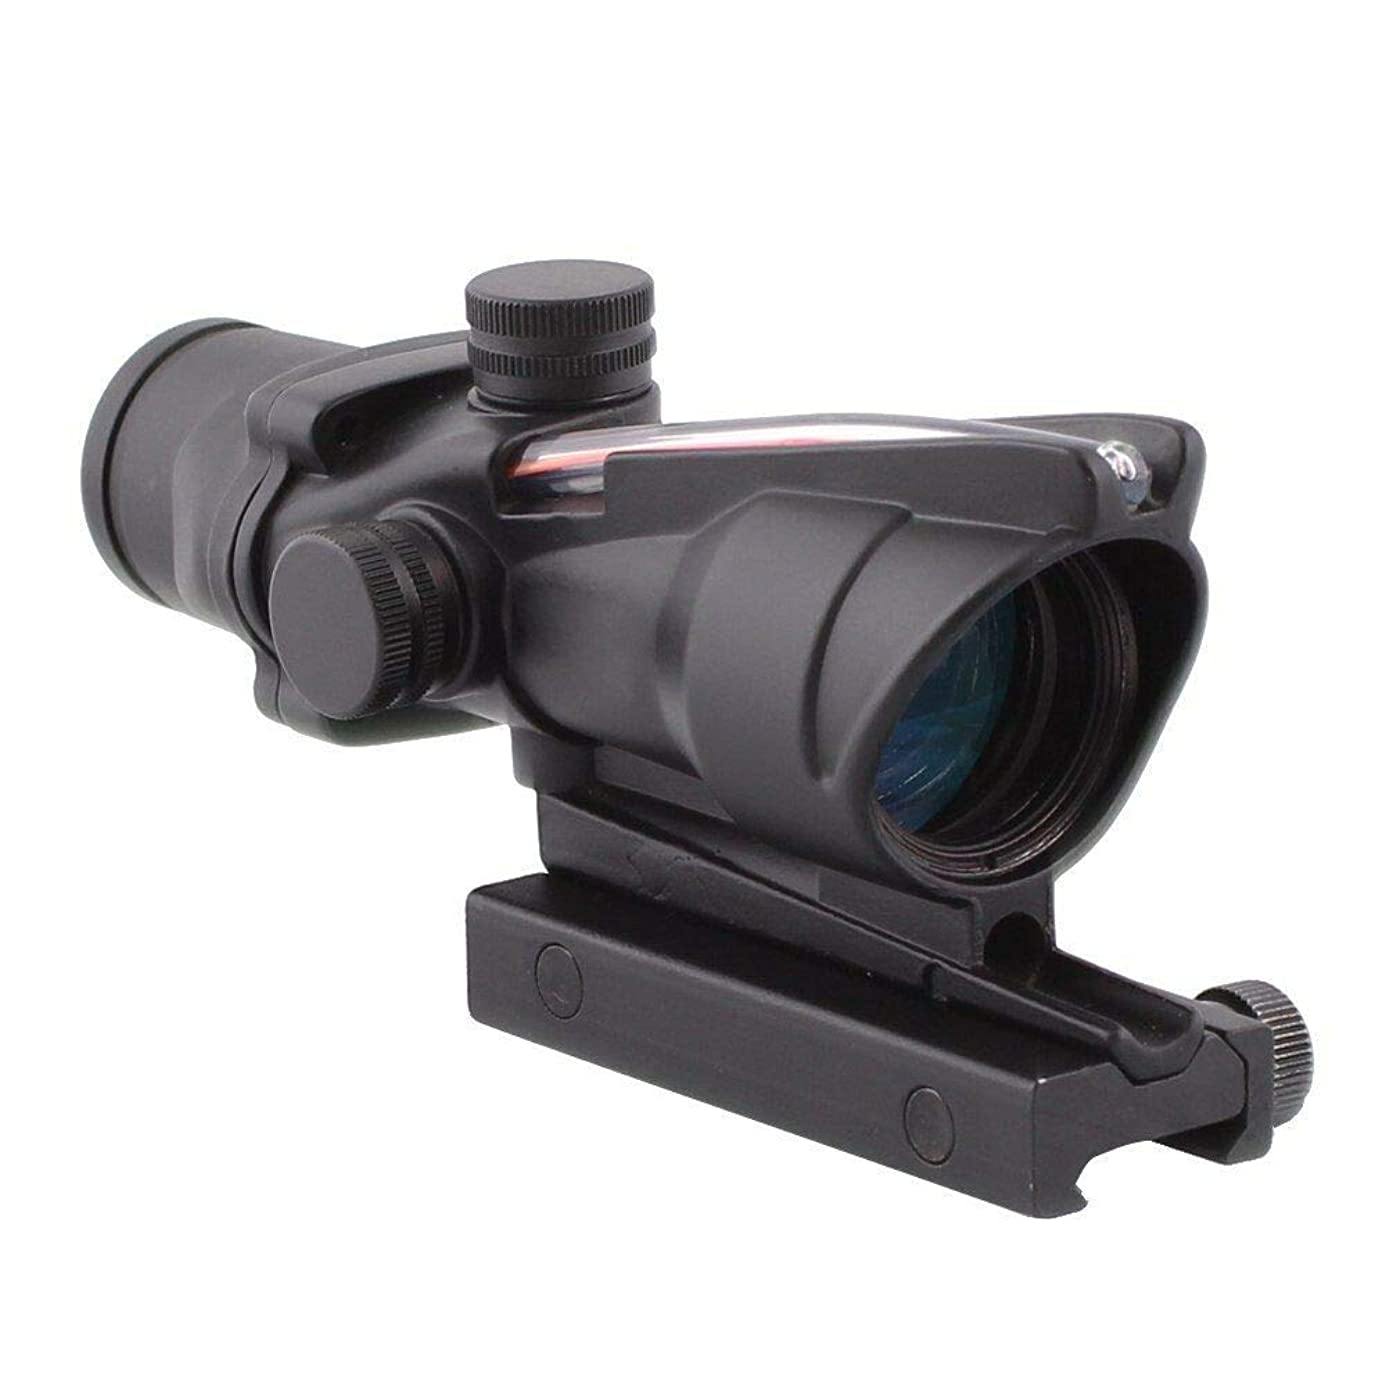 DEENFEND 4x32 ACOG Hunting RifleScopes Optic Sight Reticle Real Red Fiber ncy6756316